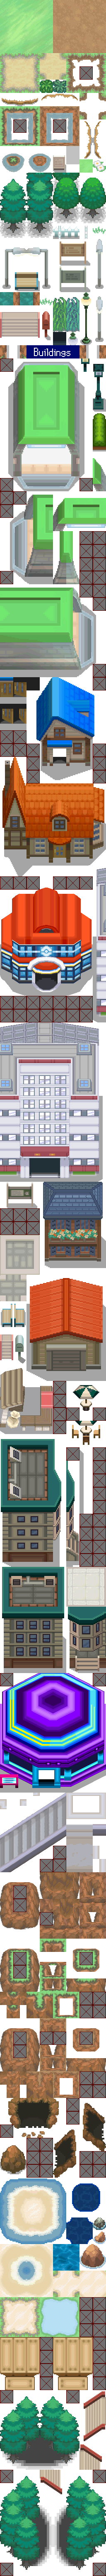 BW Spring Tileset version 2 (WIP)